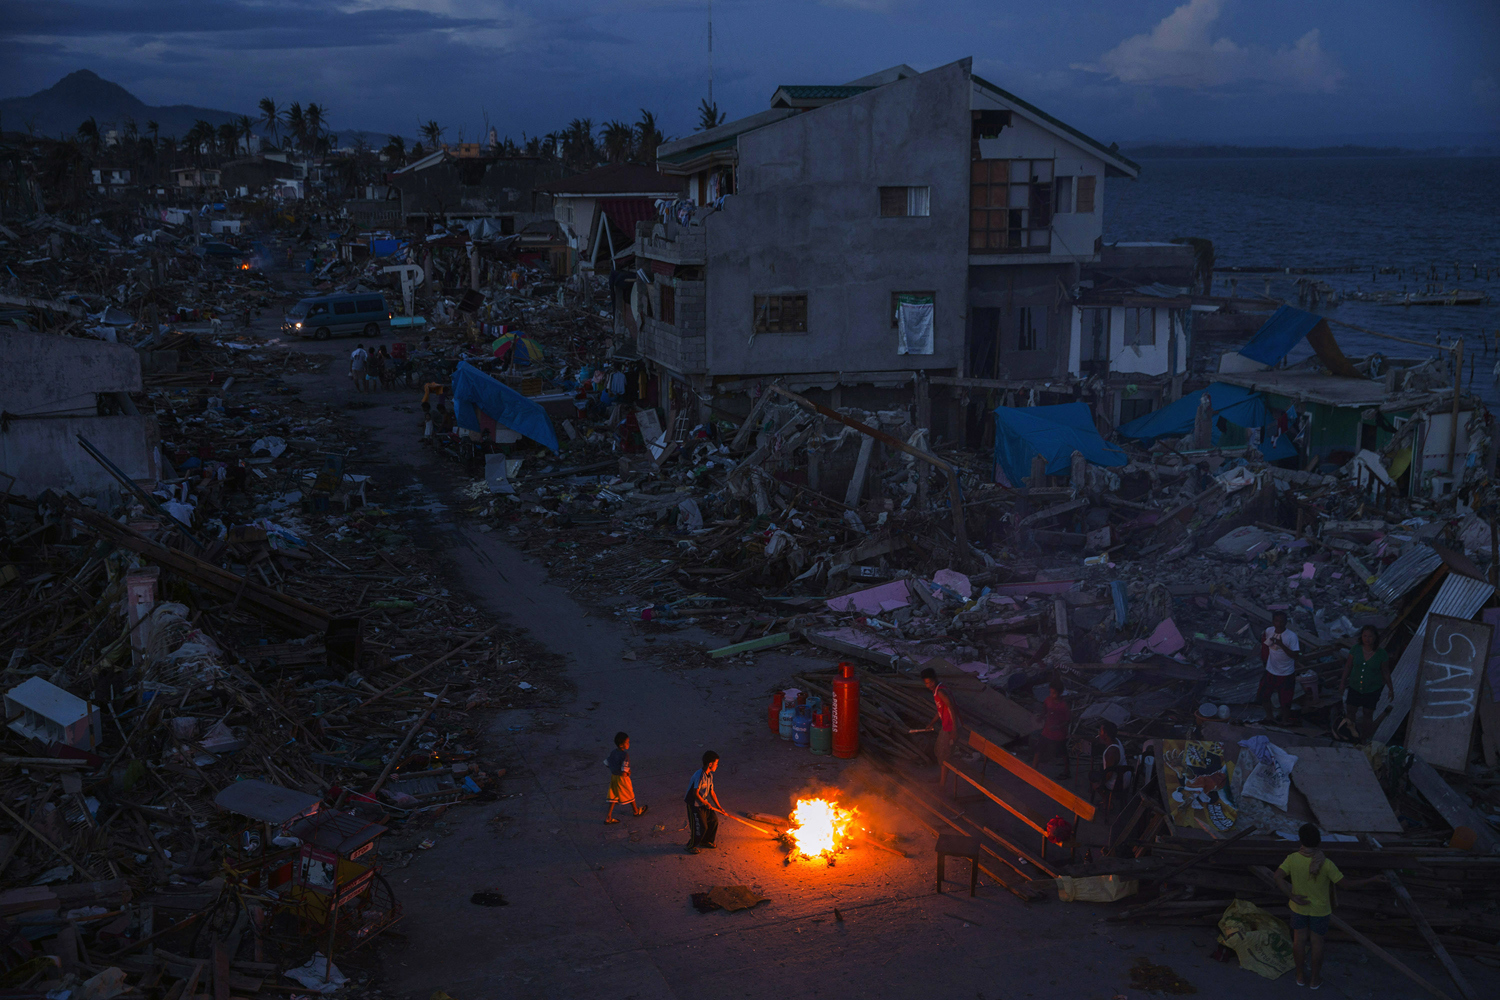 People play by a fire in a neighborhood destroyed by Typhoon Haiyan in Tacloban, Philippines on November 16, 2013.